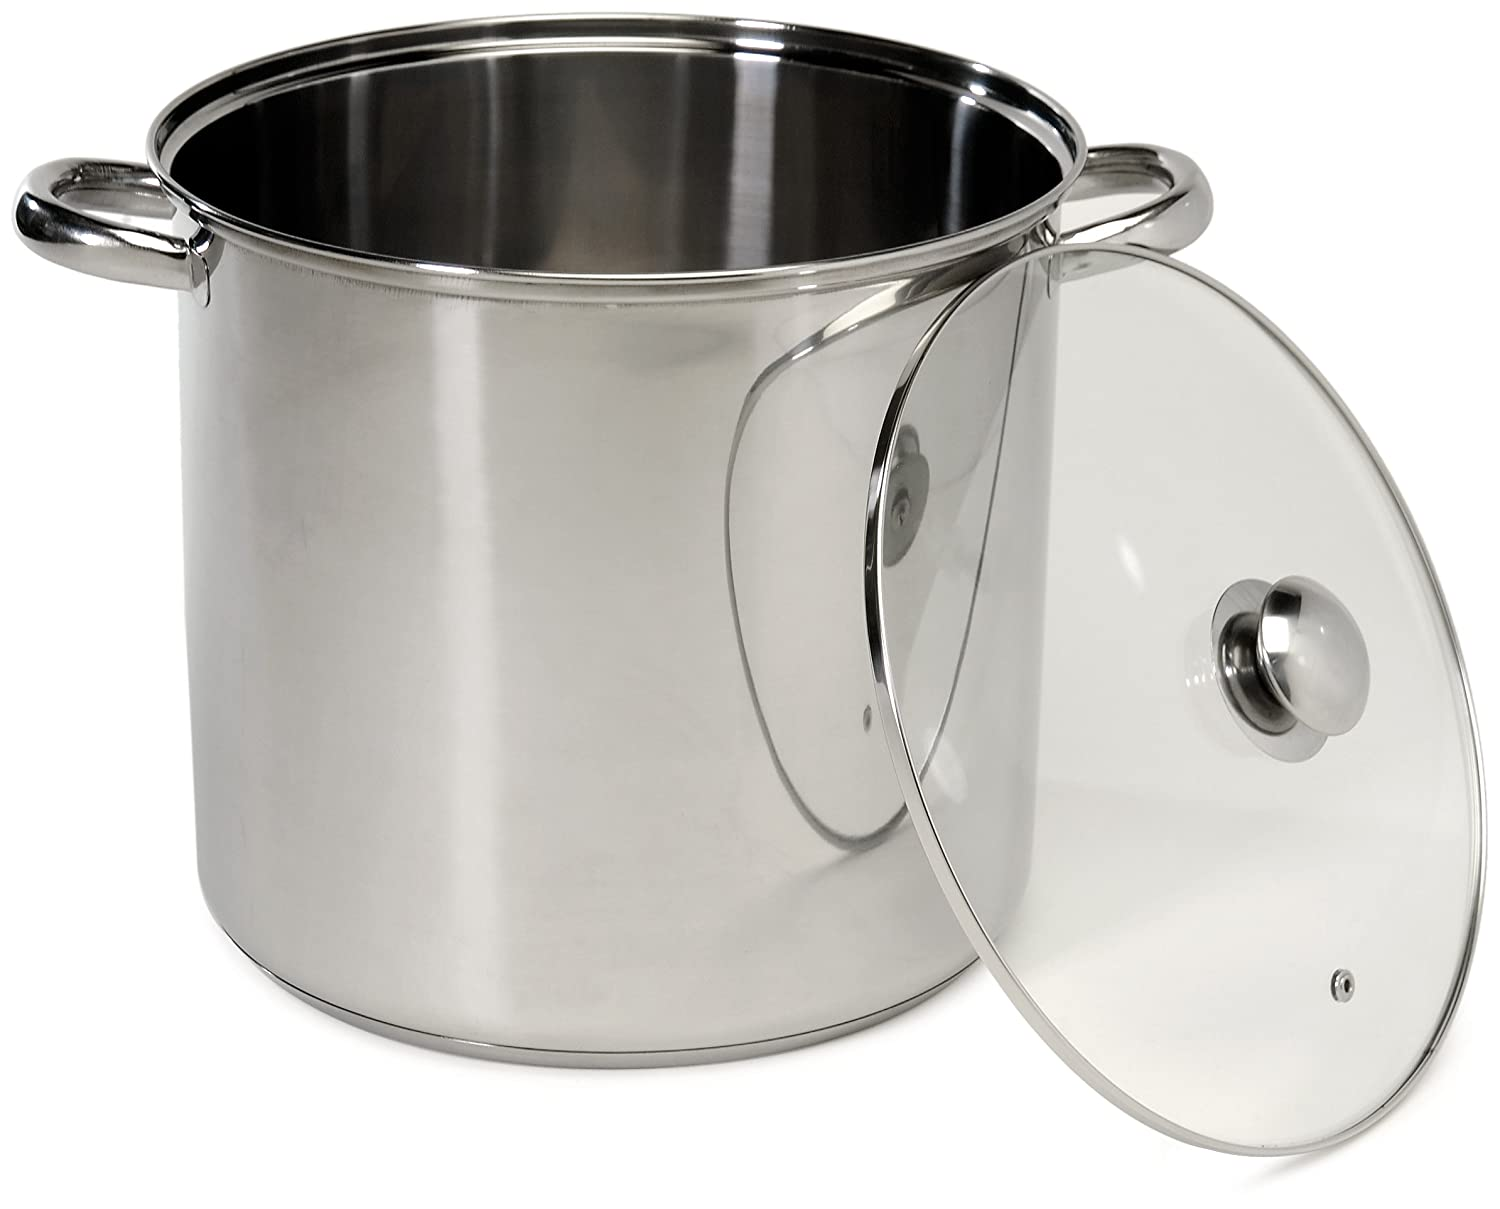 Excelsteel 16 Quart Stainless Steel Stockpot With Encapsulated Base 550